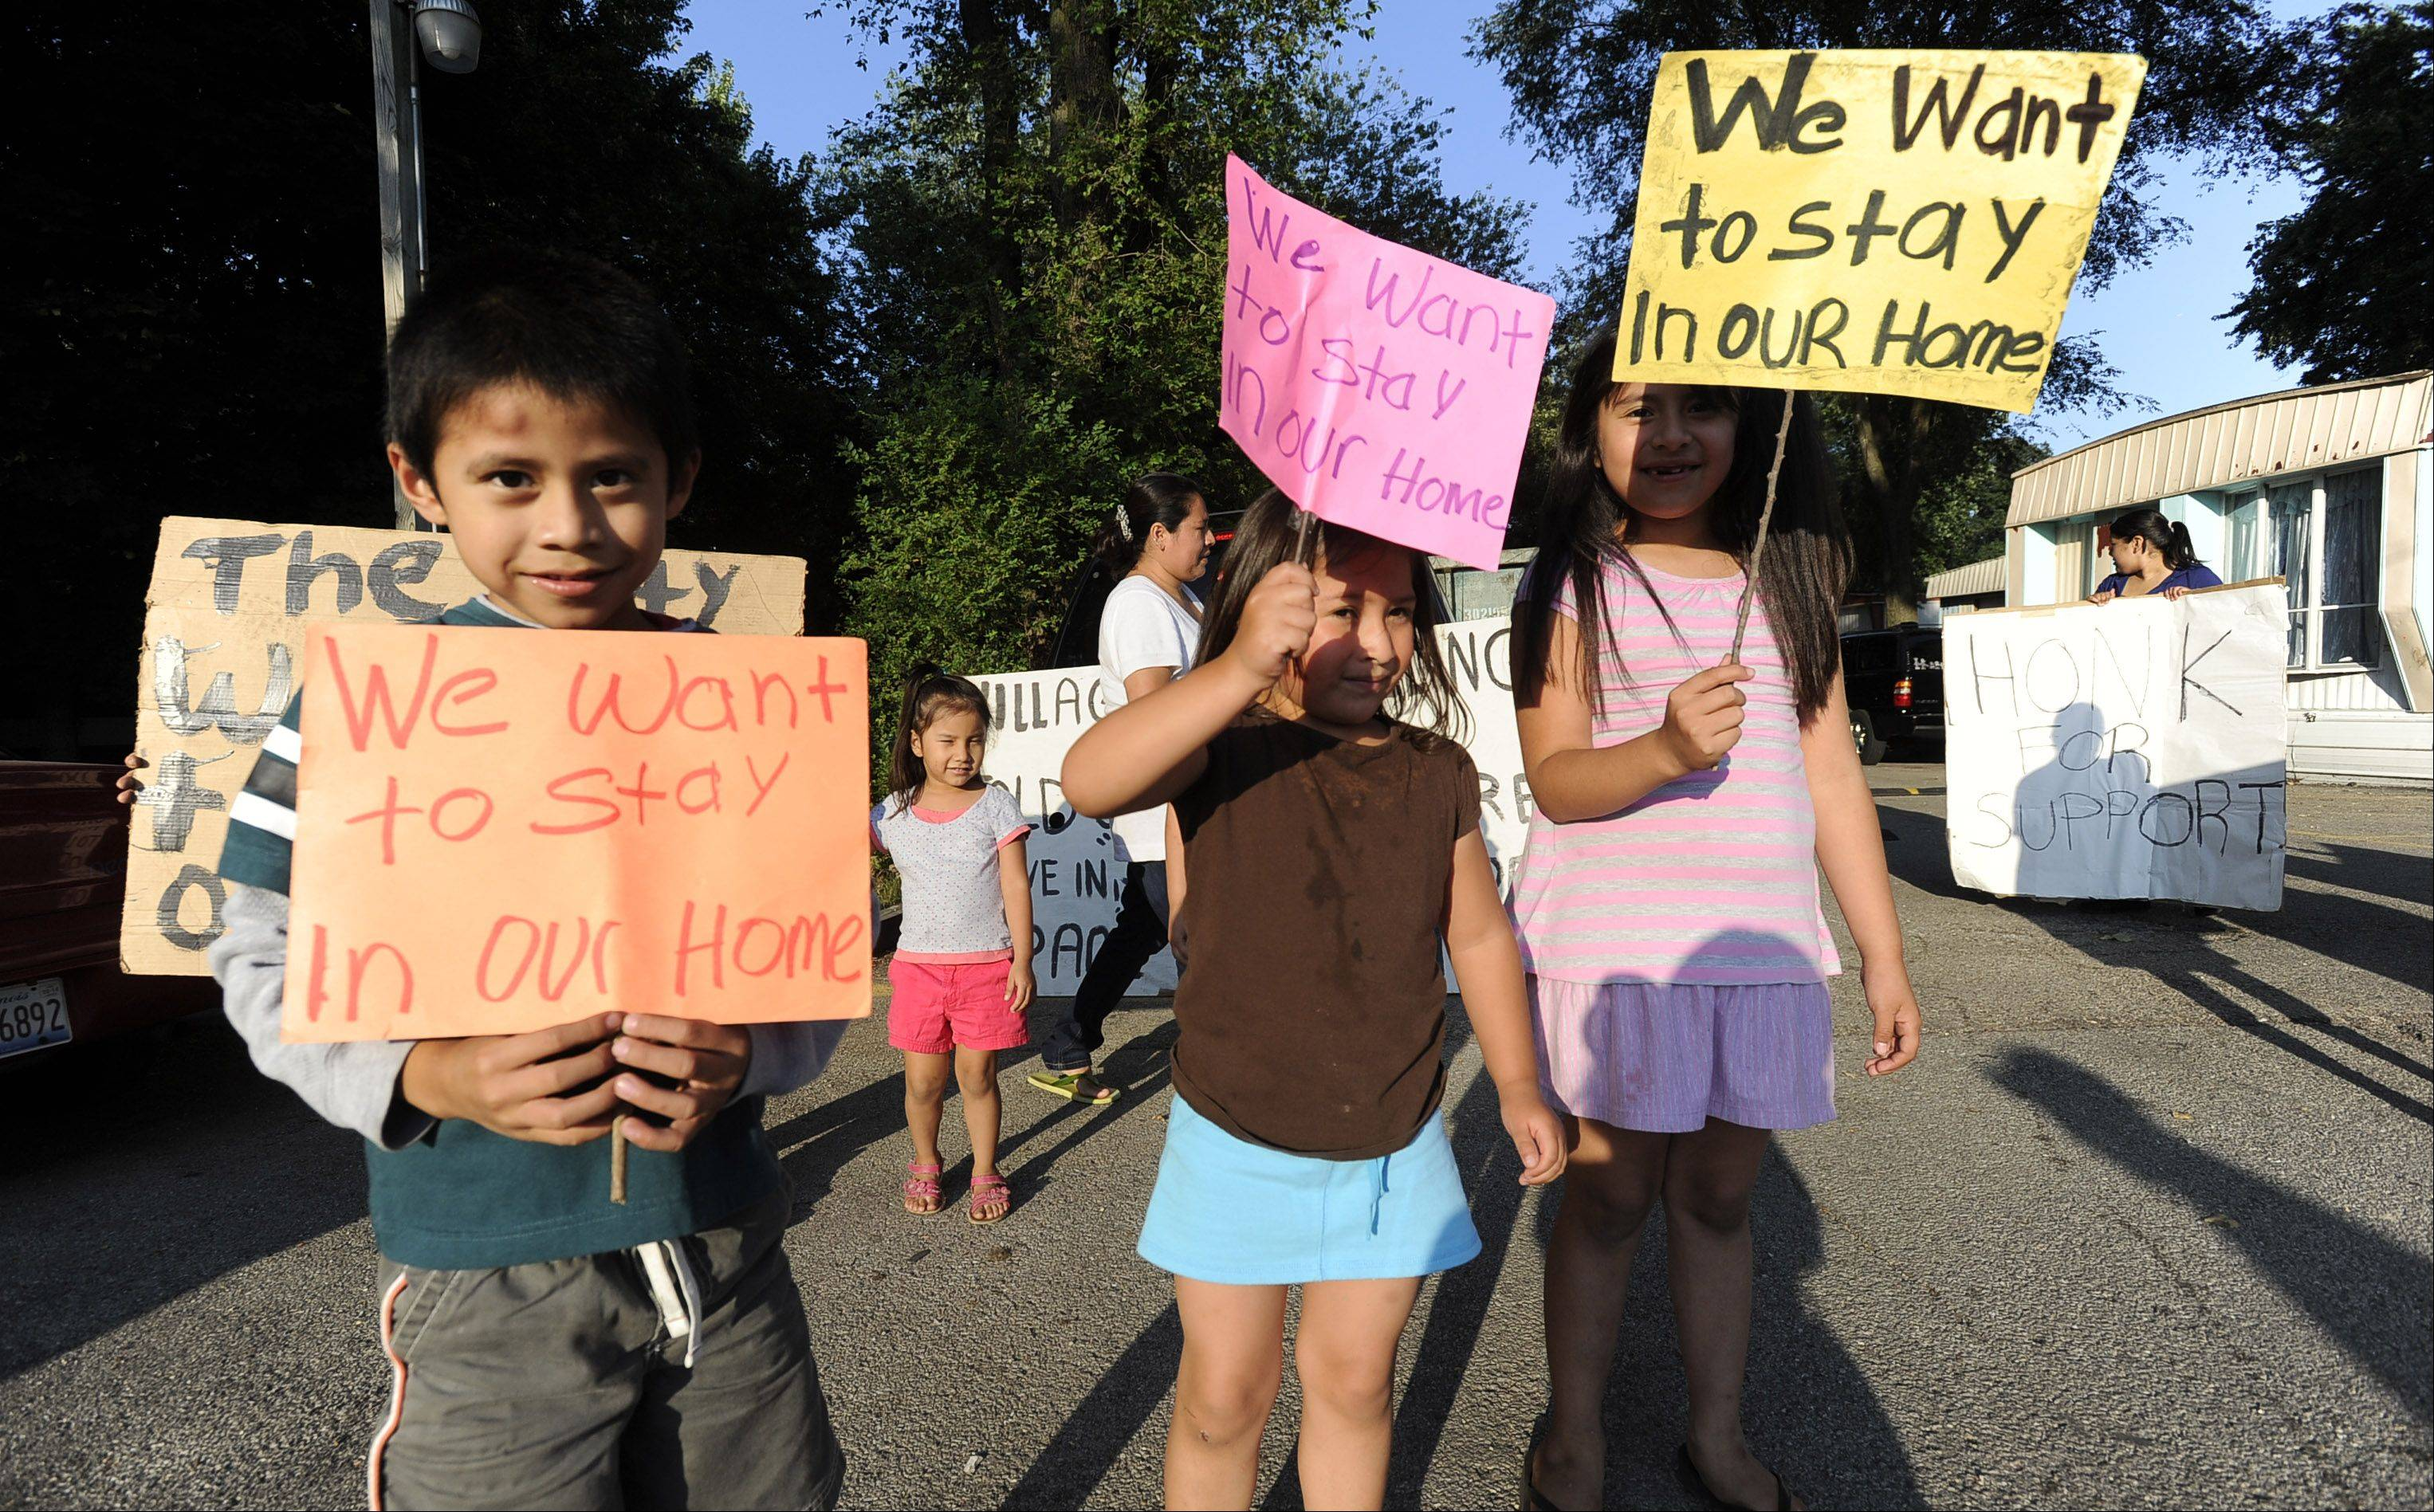 Yair Carreno, 5, Gabnela Guillen, 4, and Areli Carreno, 7, join the protest last Friday